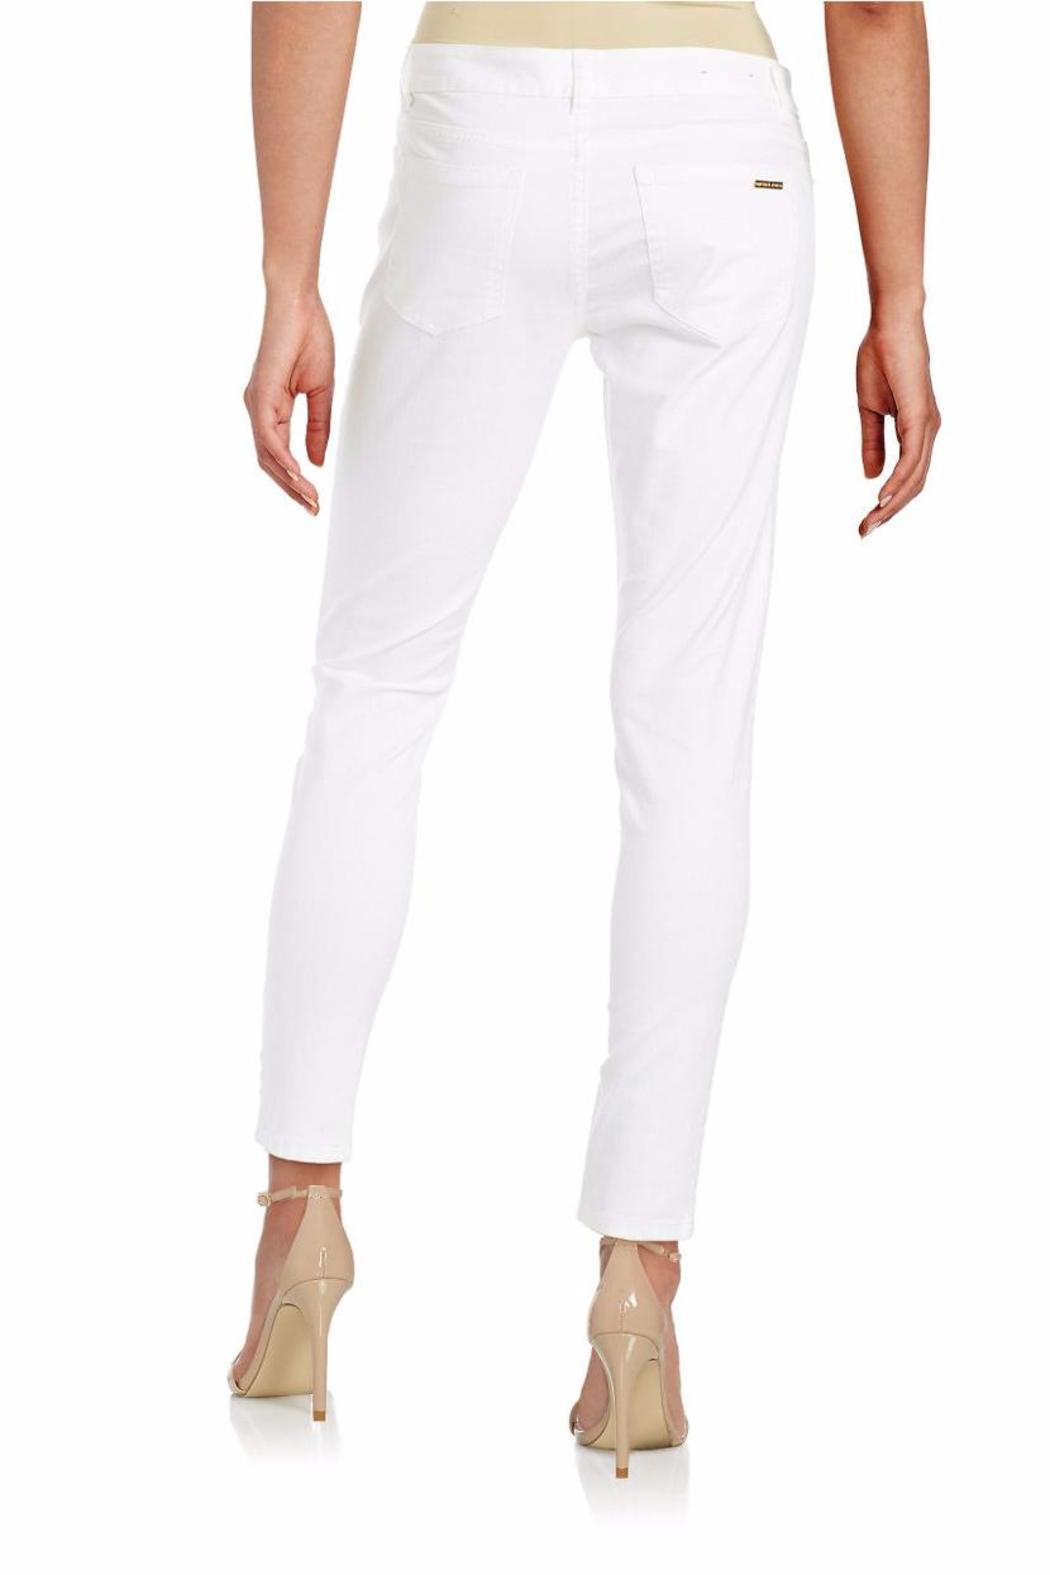 Michael by Michael Kors Cropped Skinny Jeans - Front Full Image